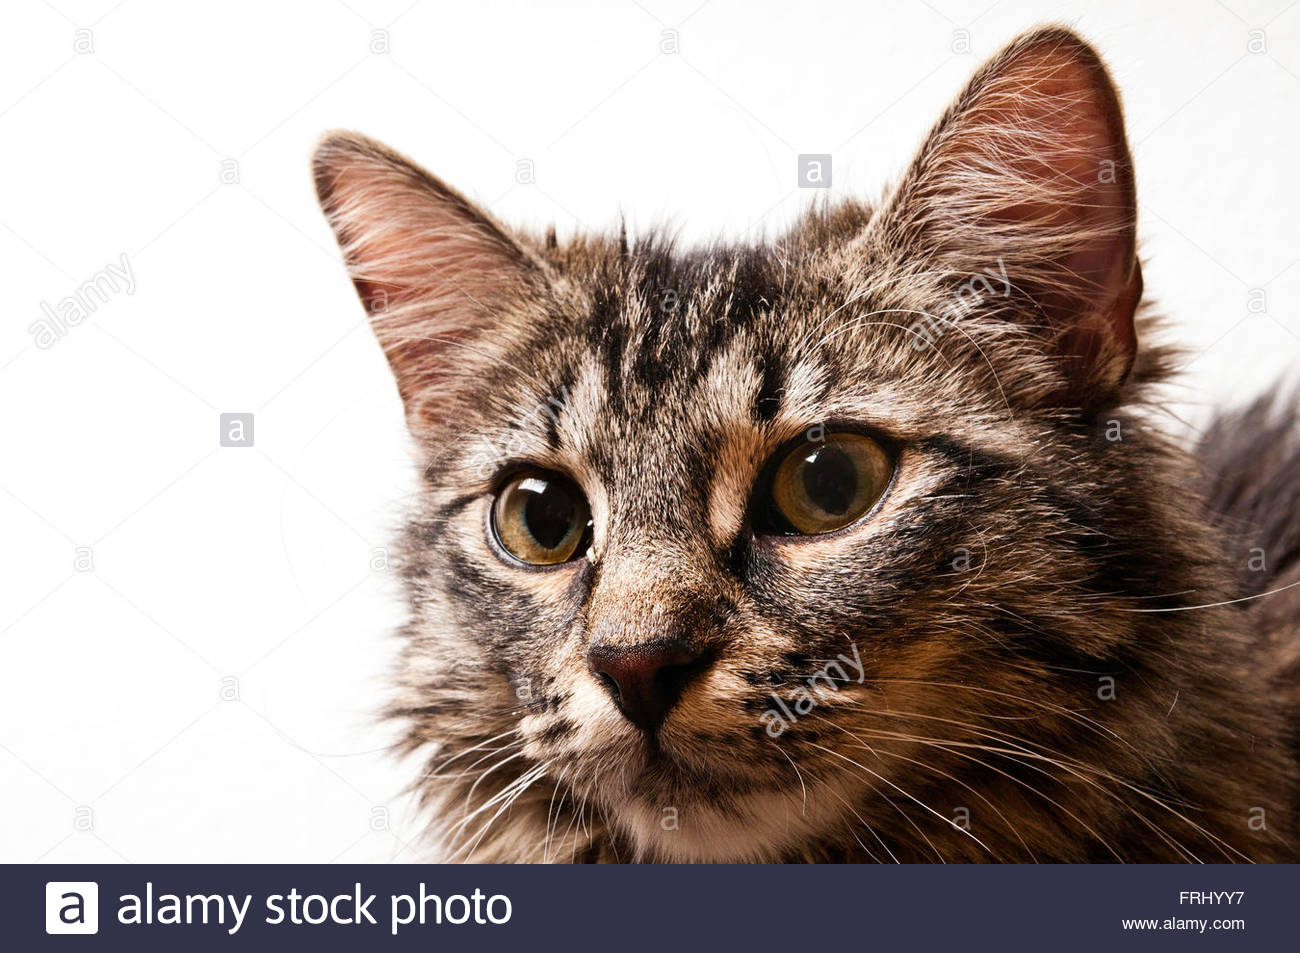 cat face expression - Stock Image